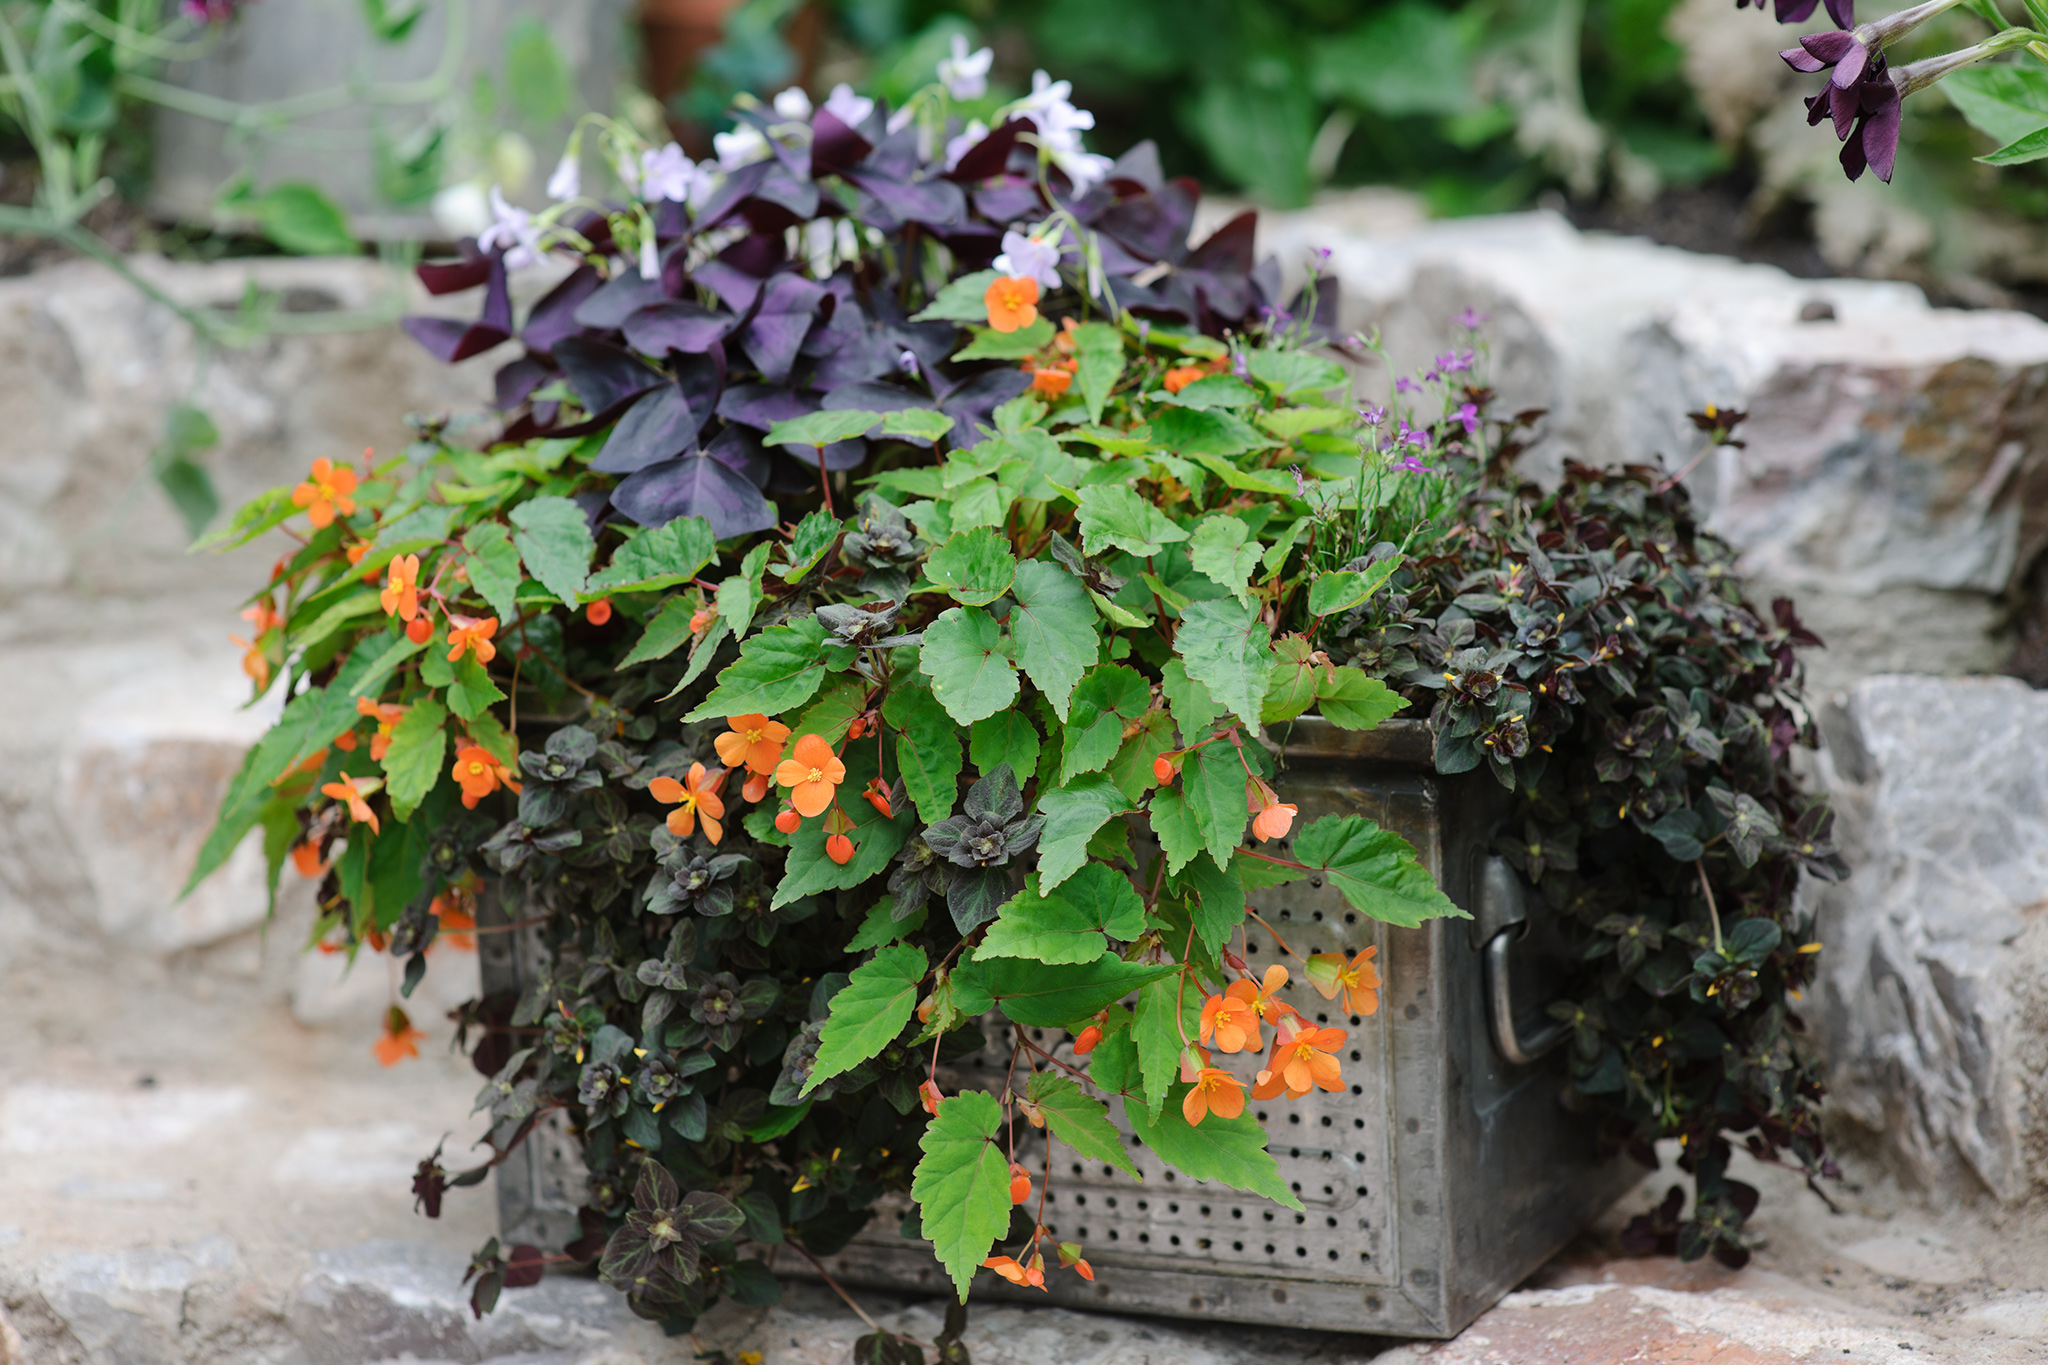 Pot for shade planted with lysimachia, oxalis and begonia